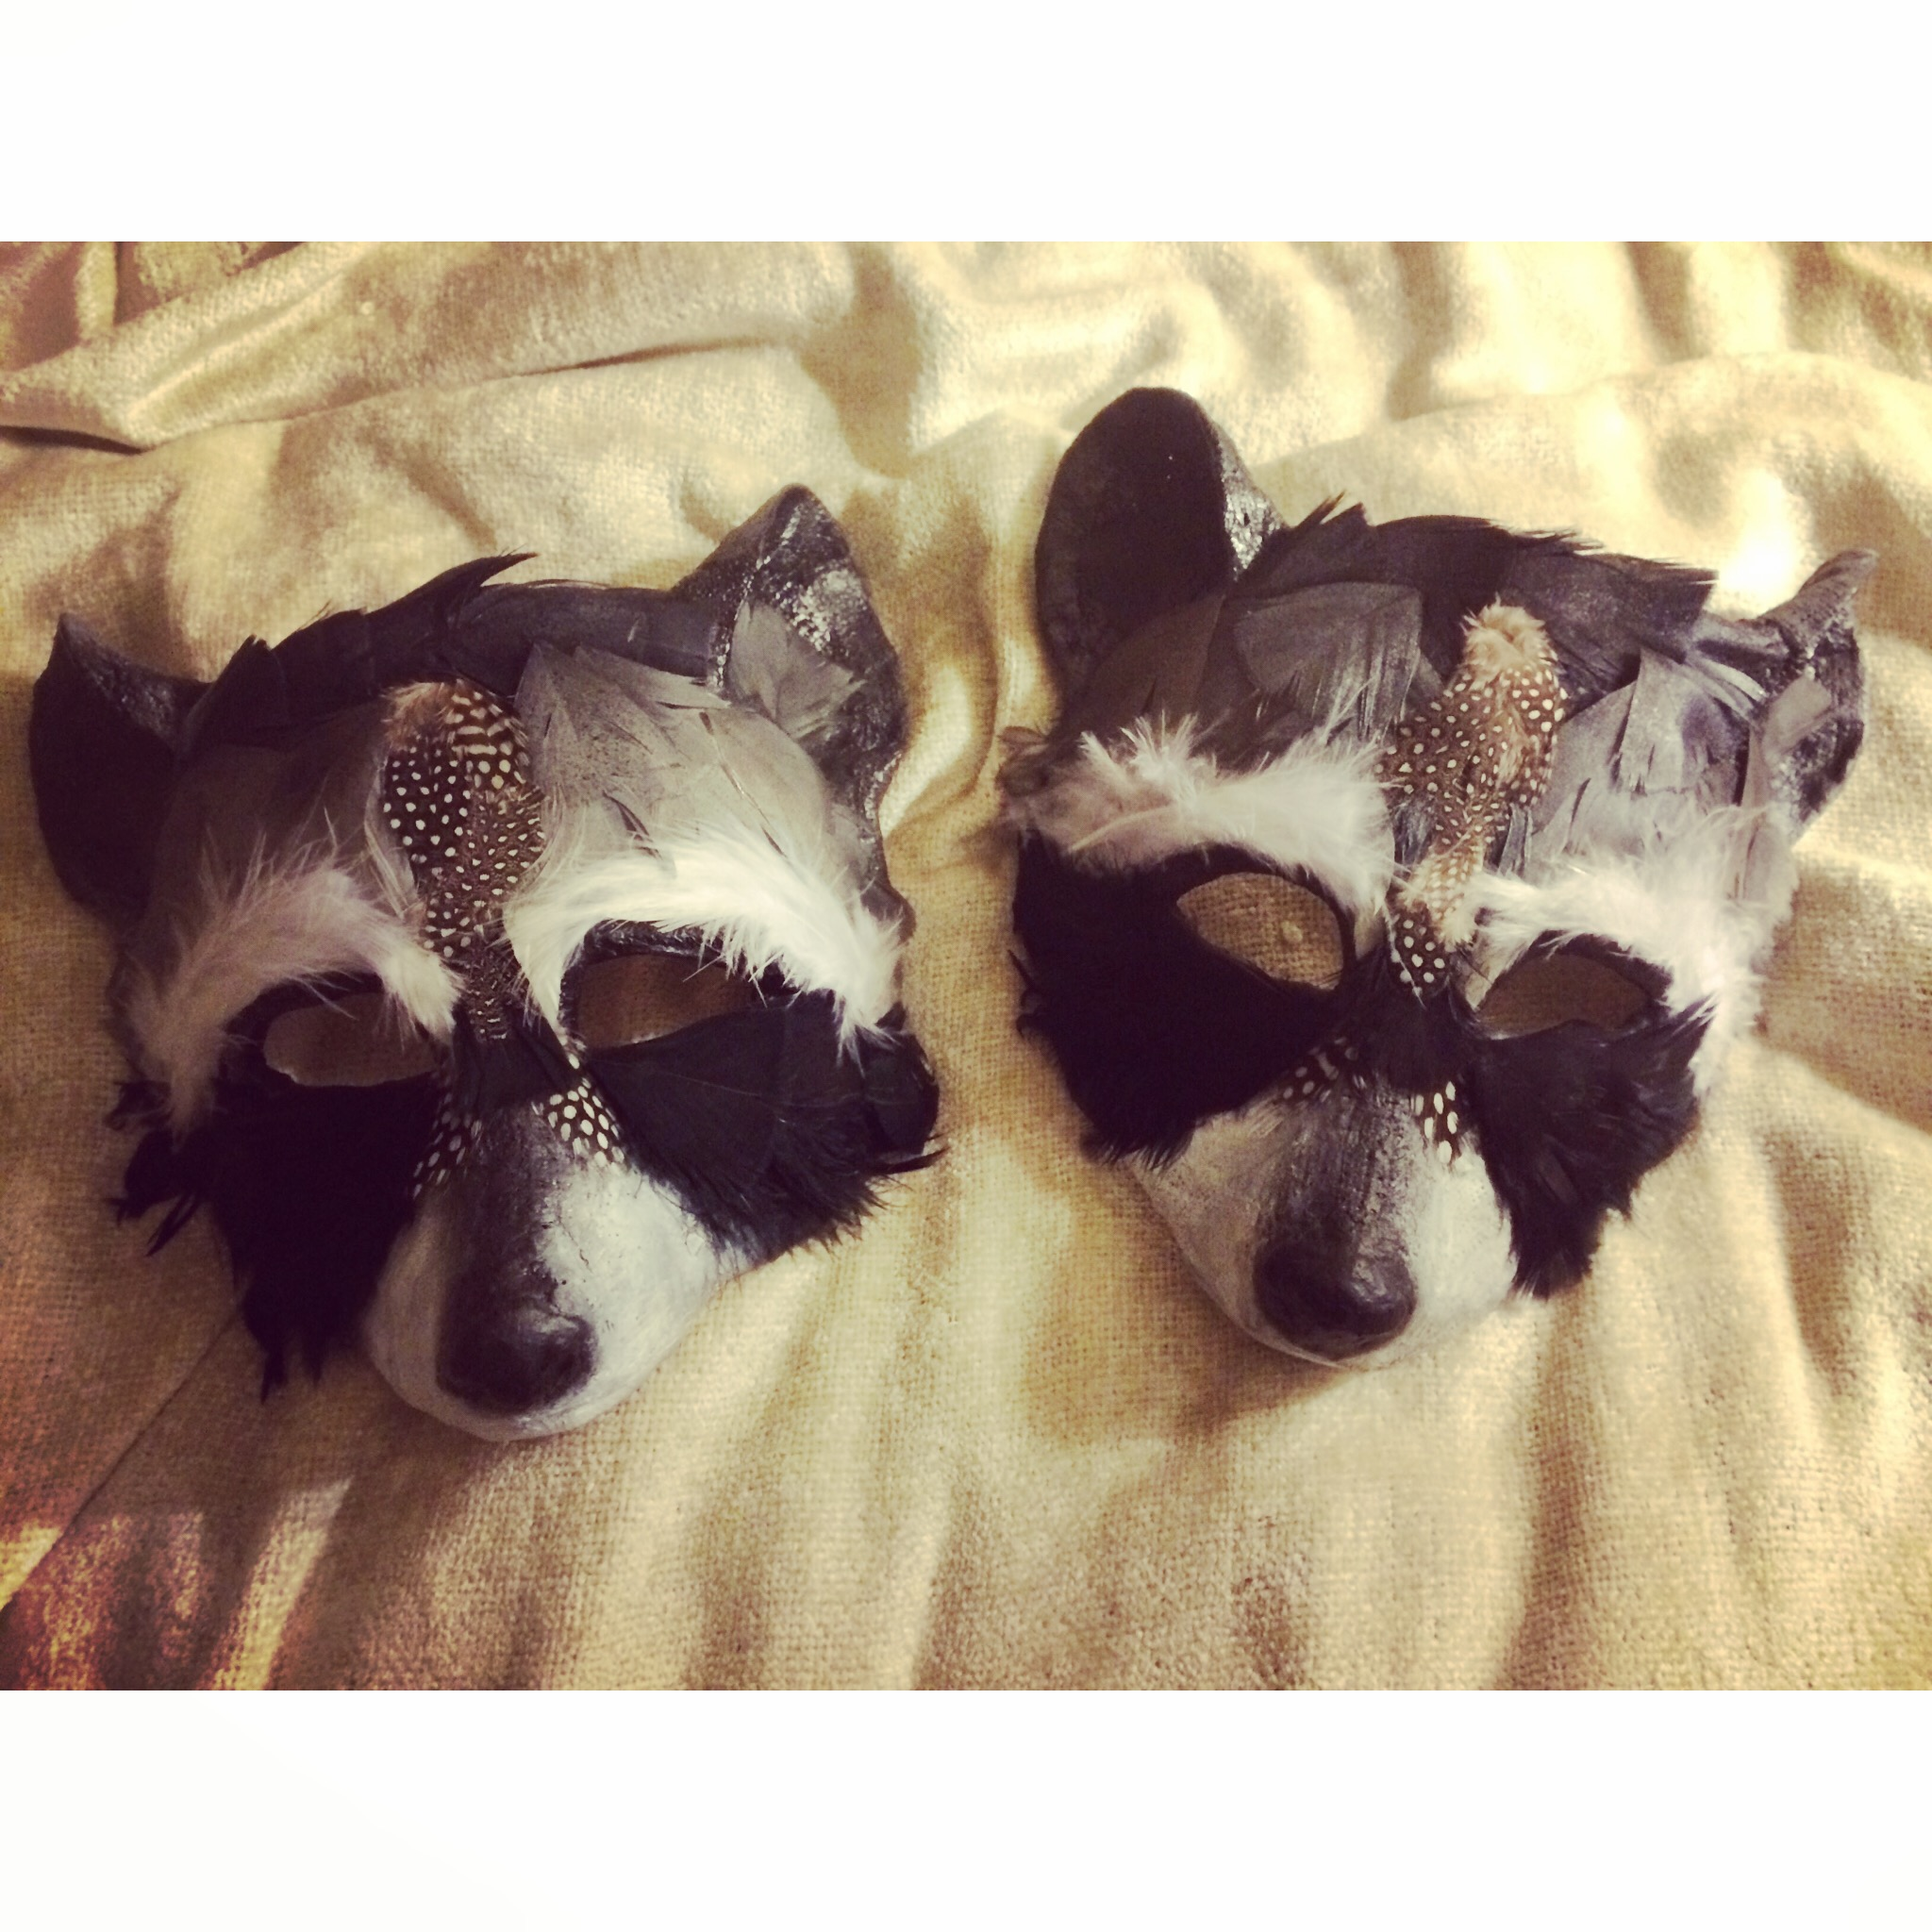 Raccoon Lovers, 2015. Plaster wrap, chicken feather, acrylic paint, gesso  Sold